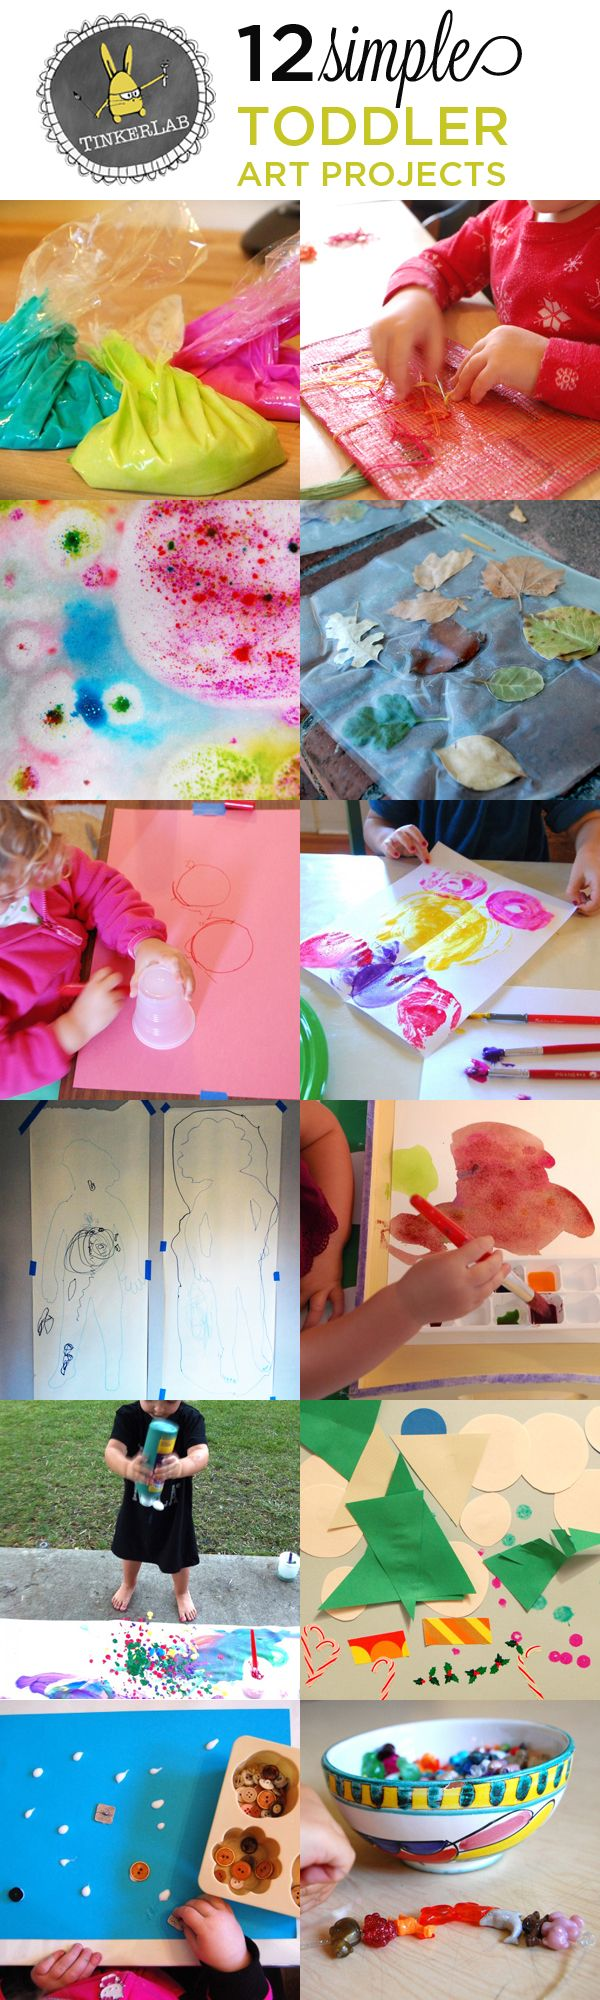 12 Art Projects for Toddlers 124 best